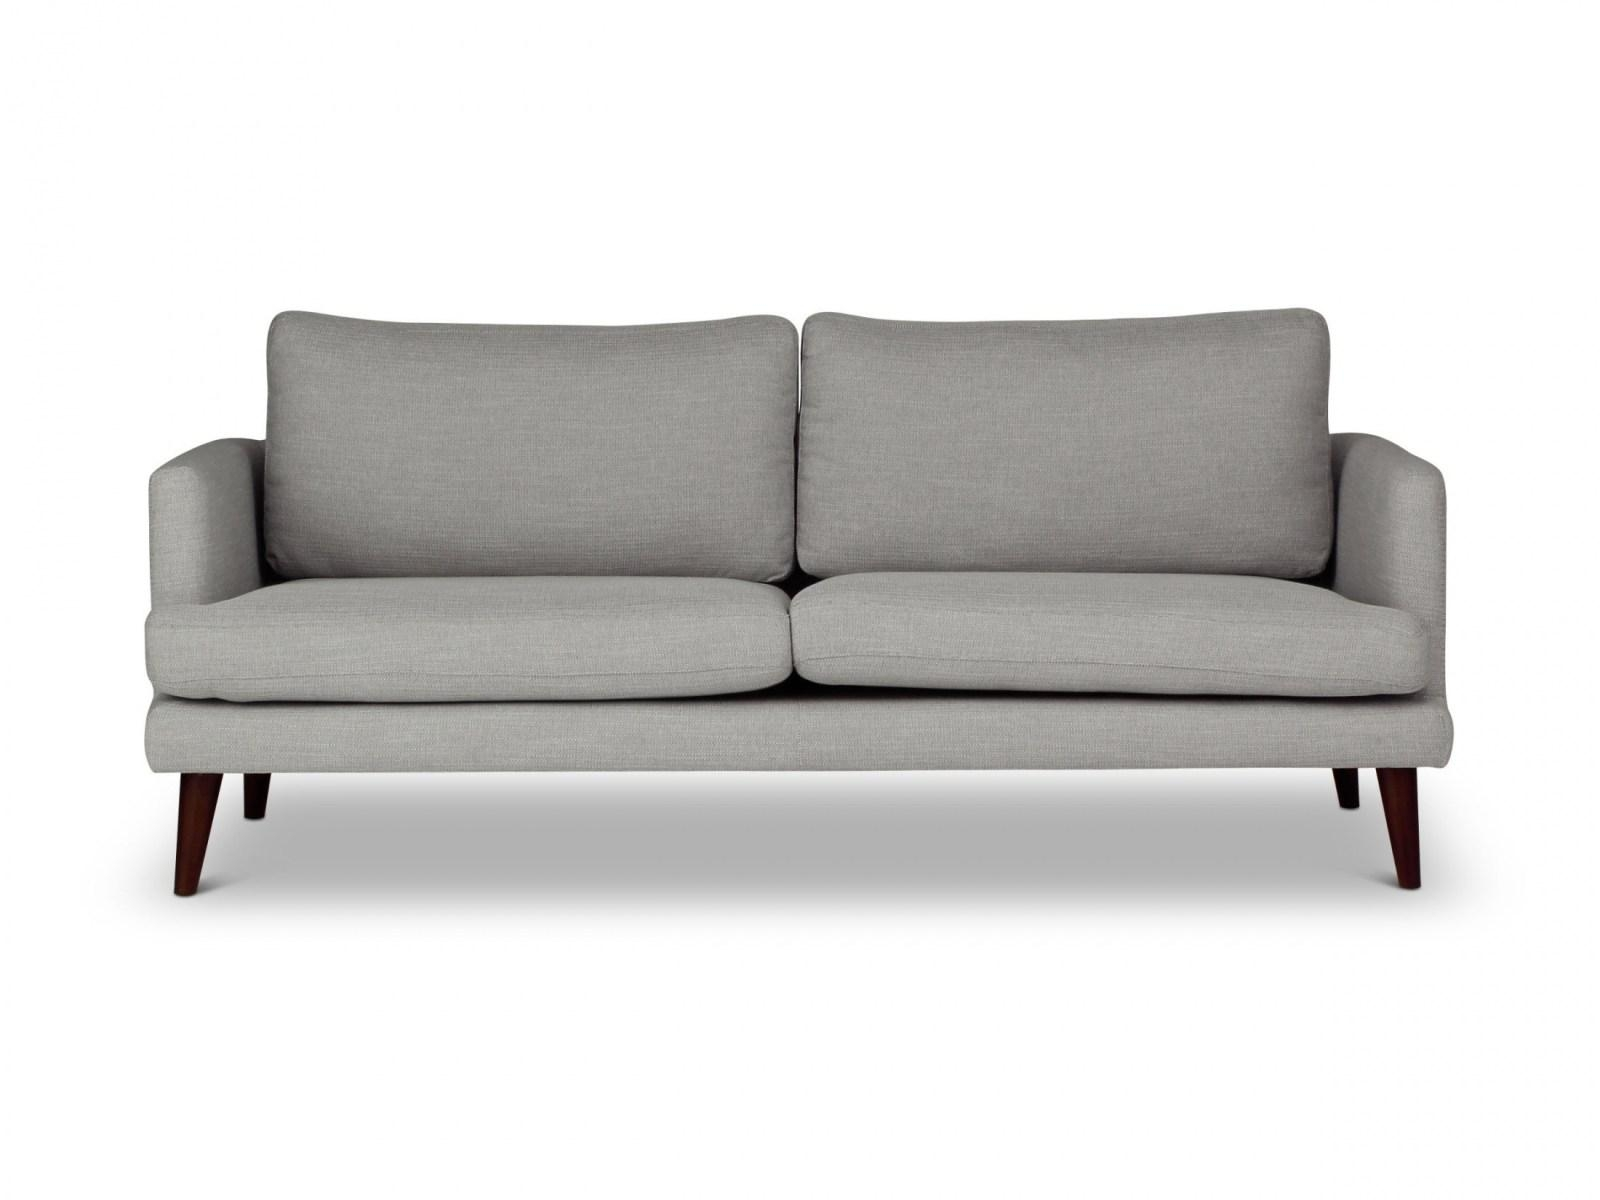 sofa sleeper for camper berkline leather costco 20 collection of single beds ideas